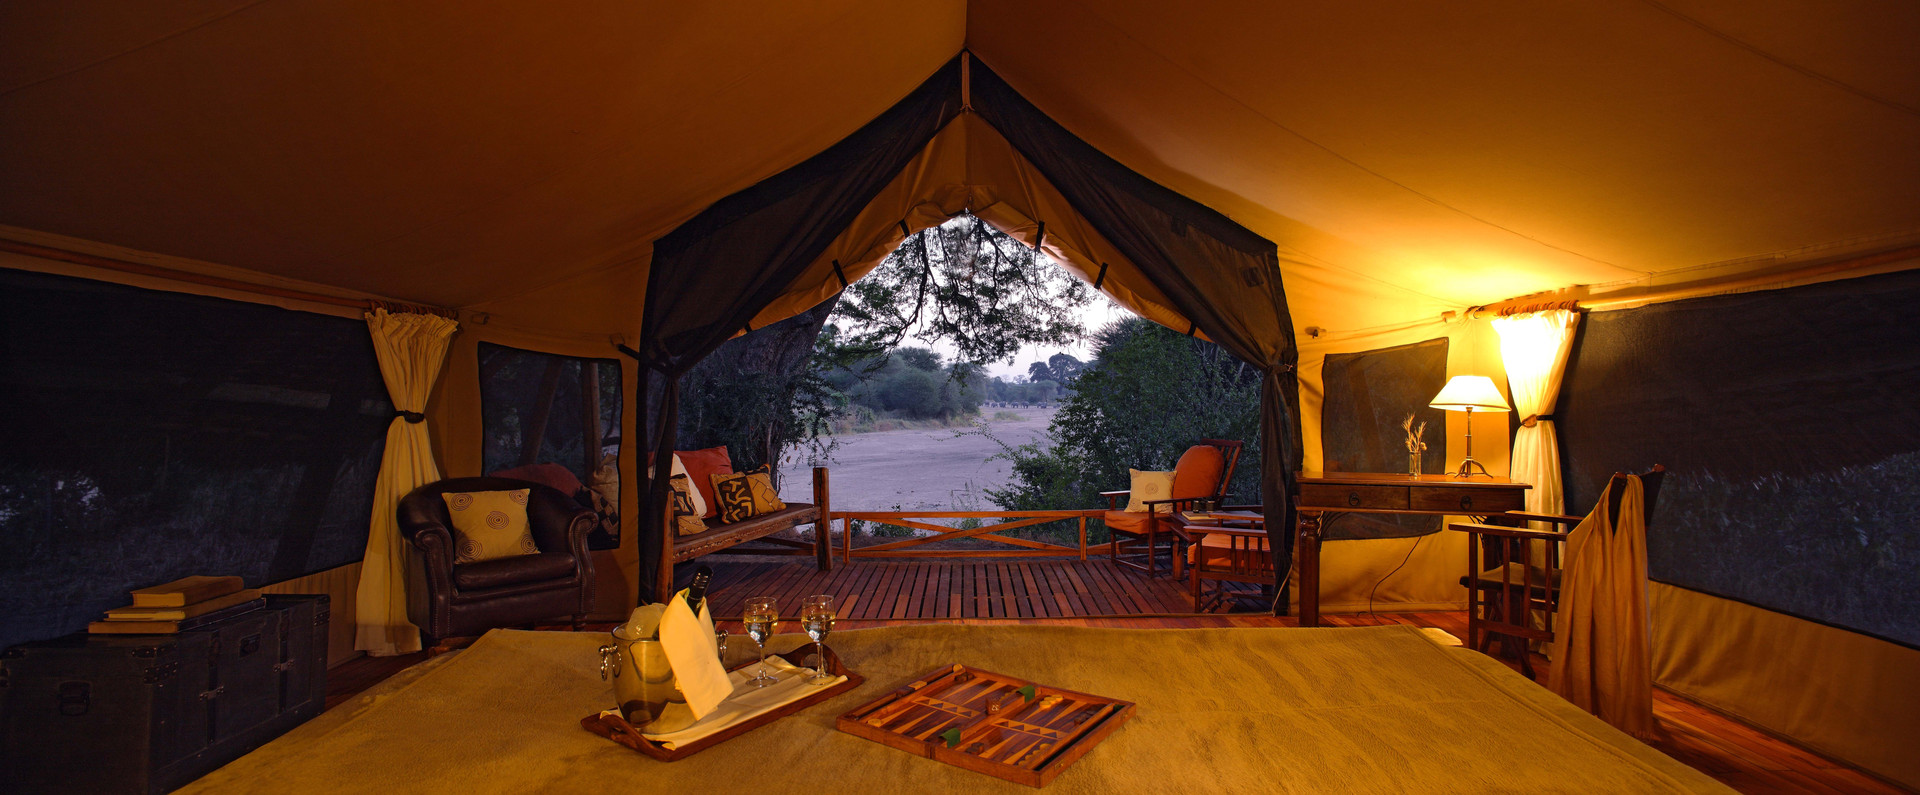 Secluded accommodation at Jongomero, Ruaha